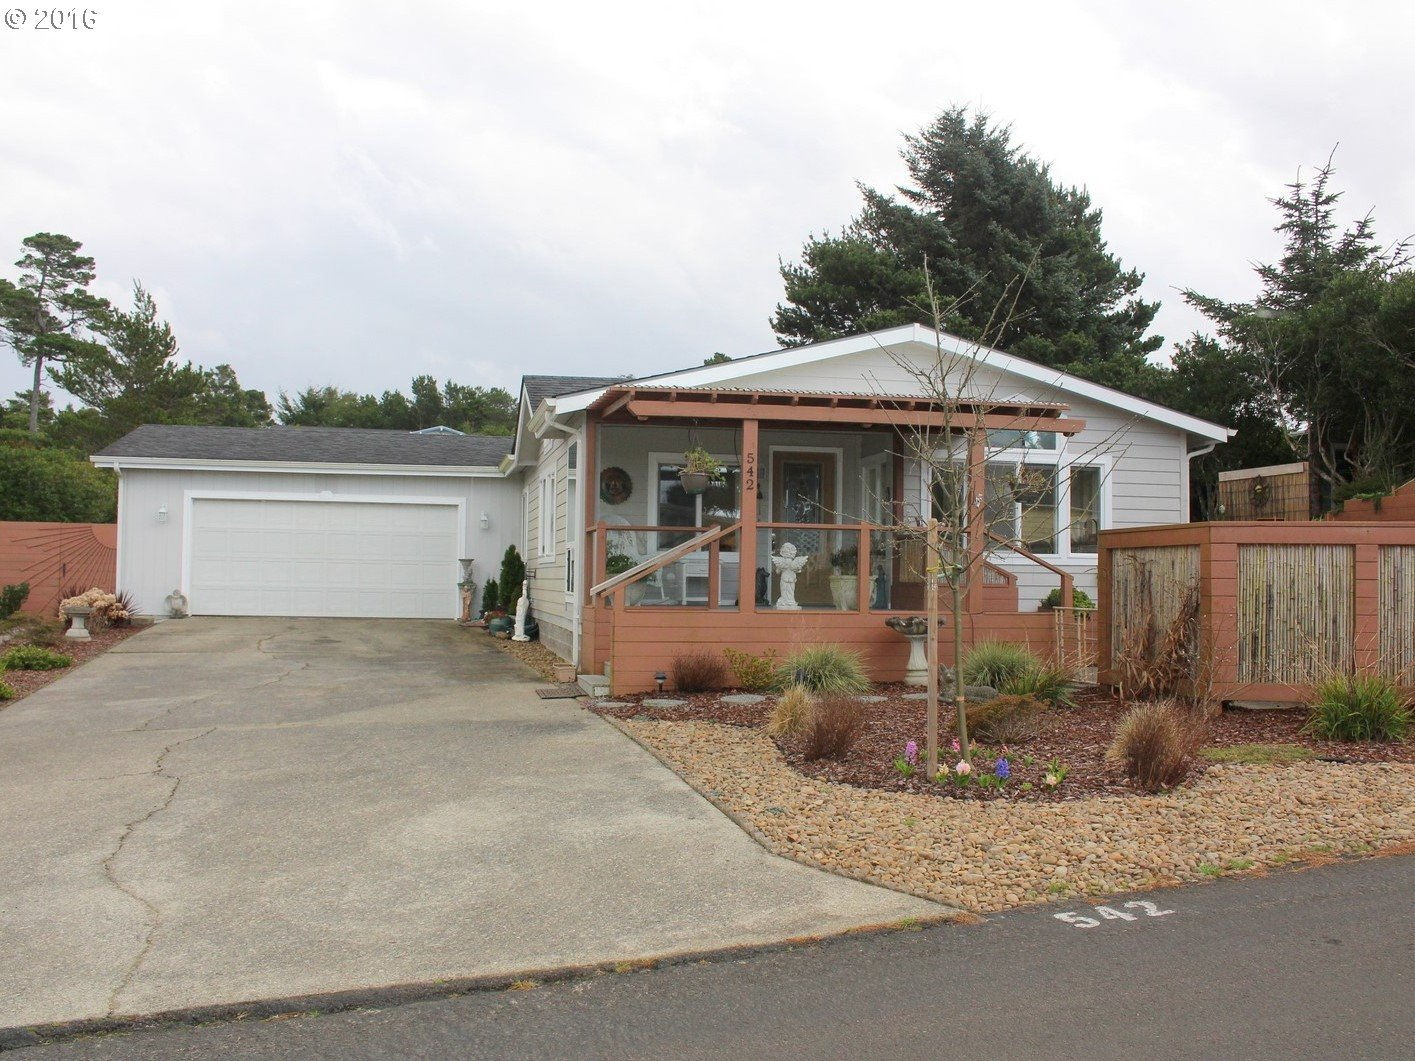 1601 rhododendron dr 542 dr apt 542 florence or 97439